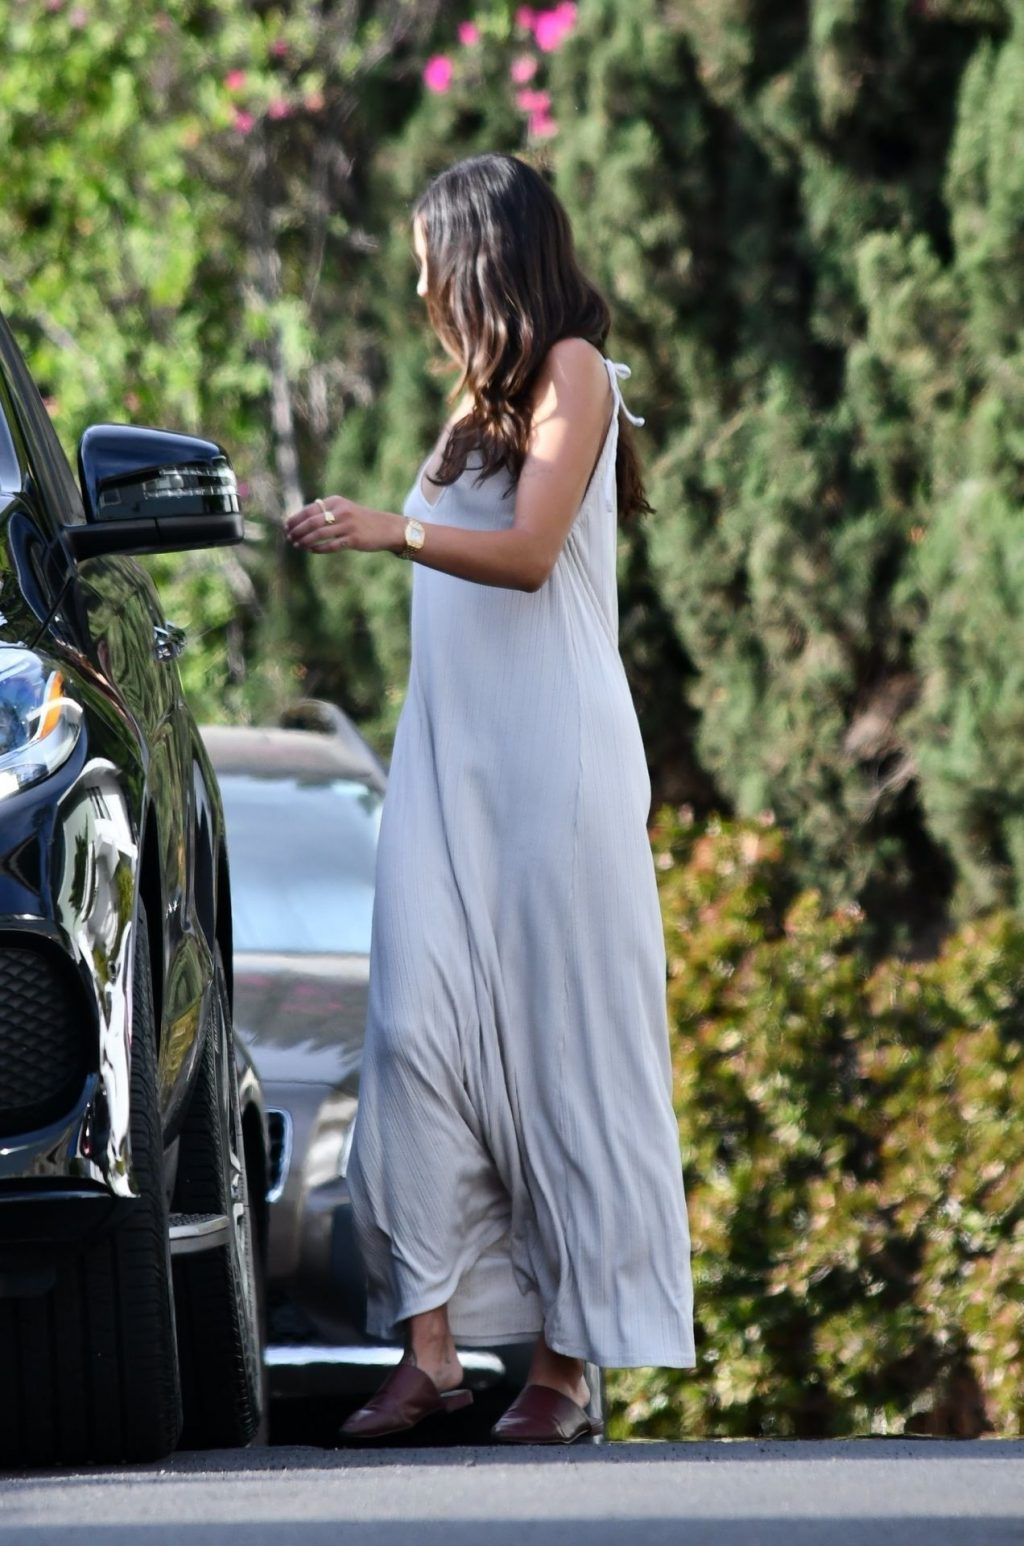 Eiza Gonzalez Wears a Full-length Backless Dress to Visit a Friend (11 Photos)